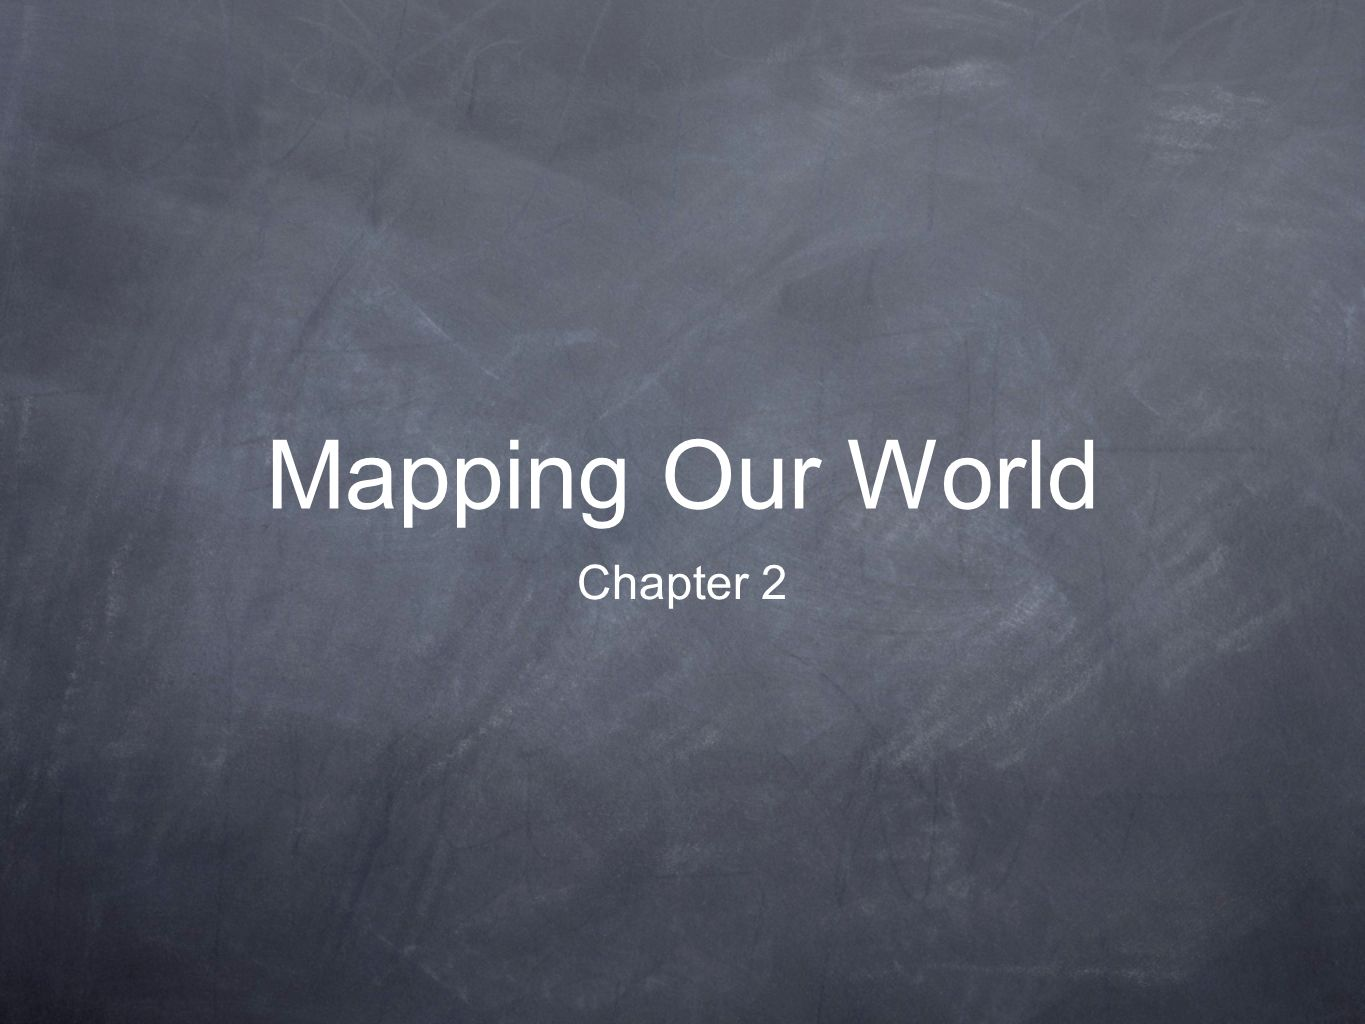 Mapping Our World Chapter 2